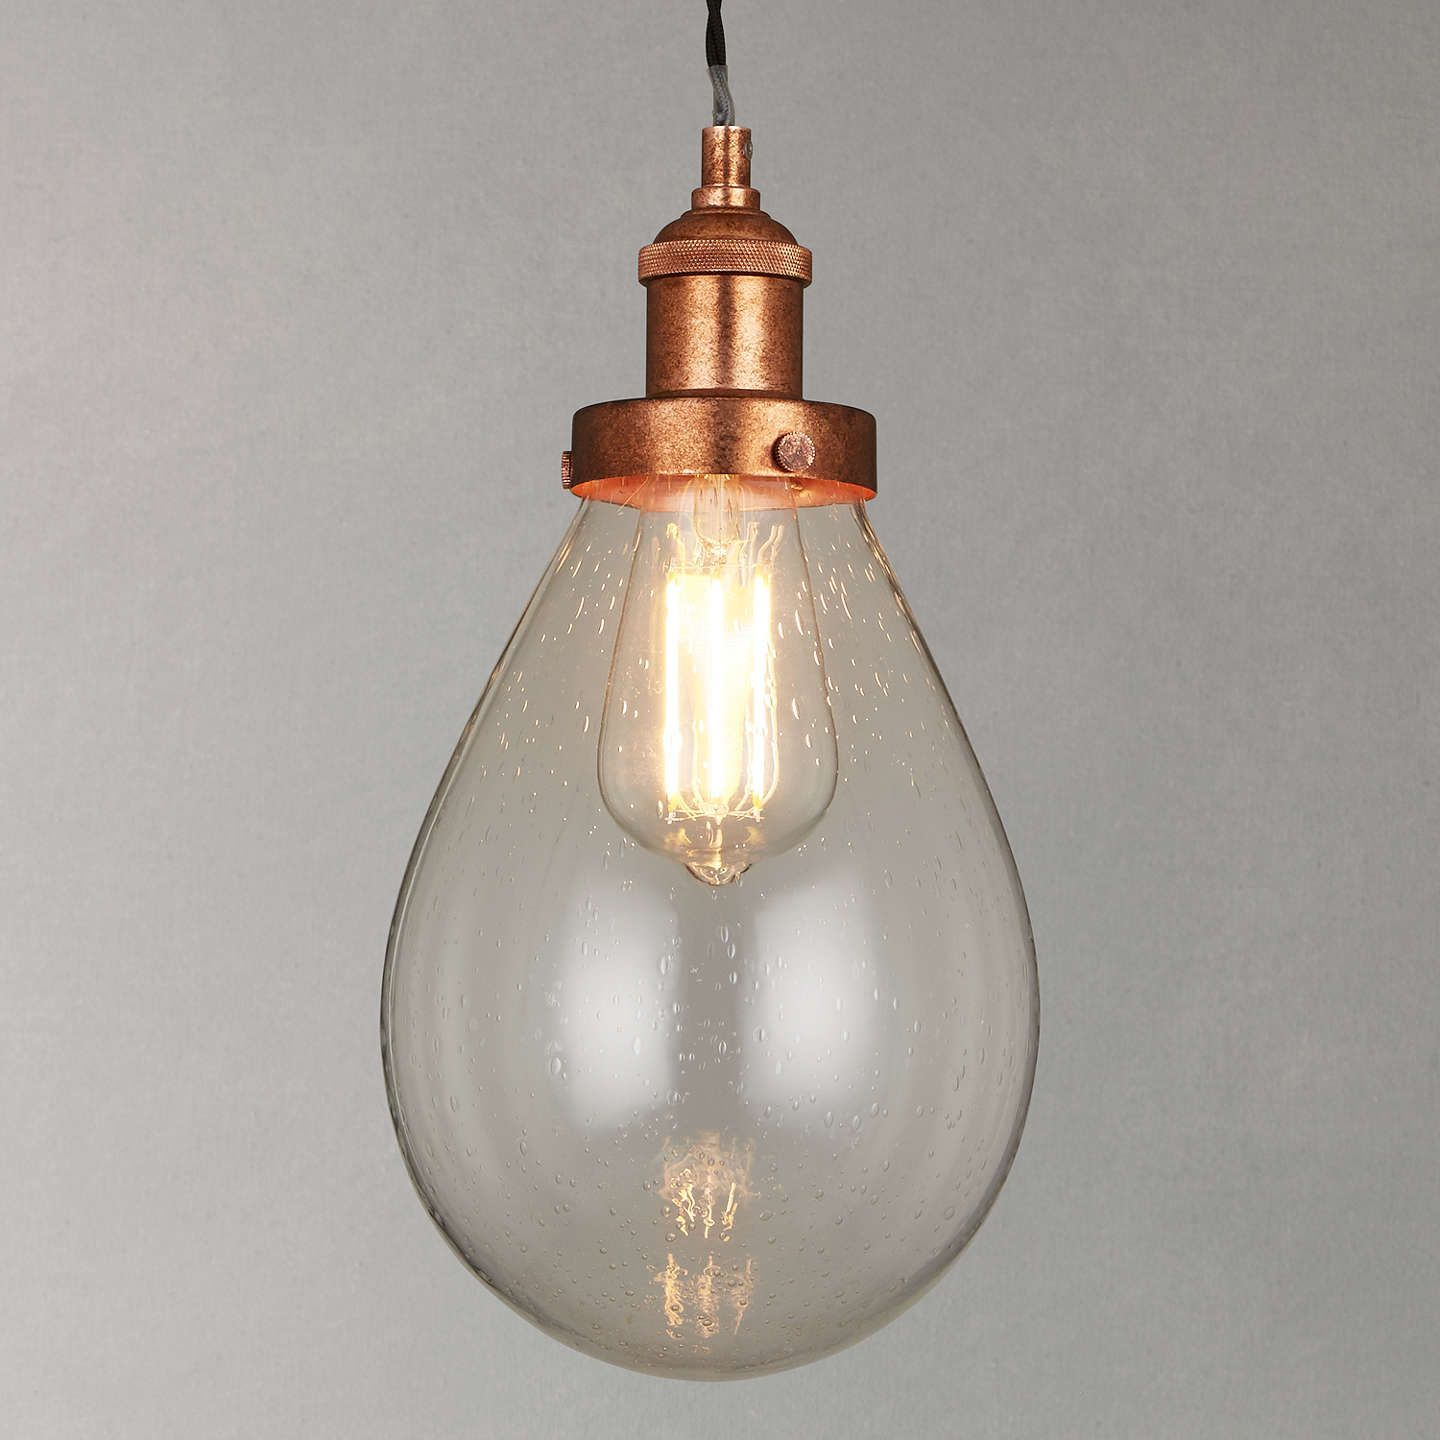 John Lewis Radley Glass Bistro Pendant Ceiling Light, Clearcopper Online